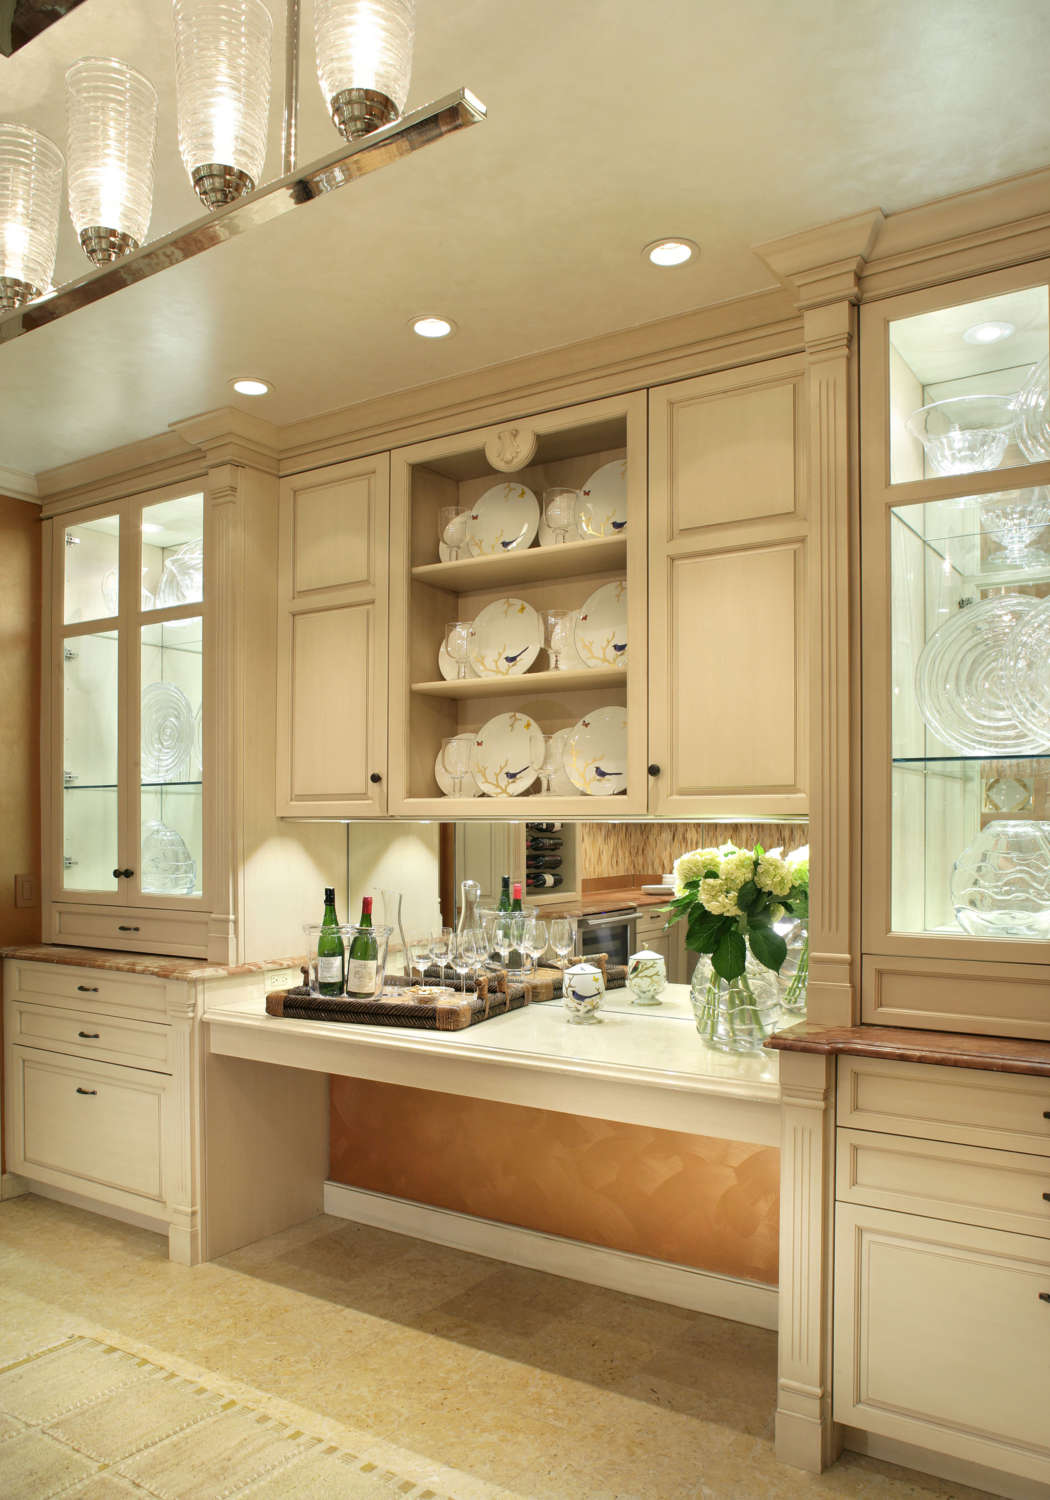 Light-filled butler's pantry features linen white painted fully custom, frameless Rutt Handcrafted Cabinetry, mirror backsplash for bar area and toffee-colored marble countertops. Open shelving and interior lit, custom china cabinets with glass fronts provide ample storage. Design by Regina Bilotta of Bilotta Kitchens.